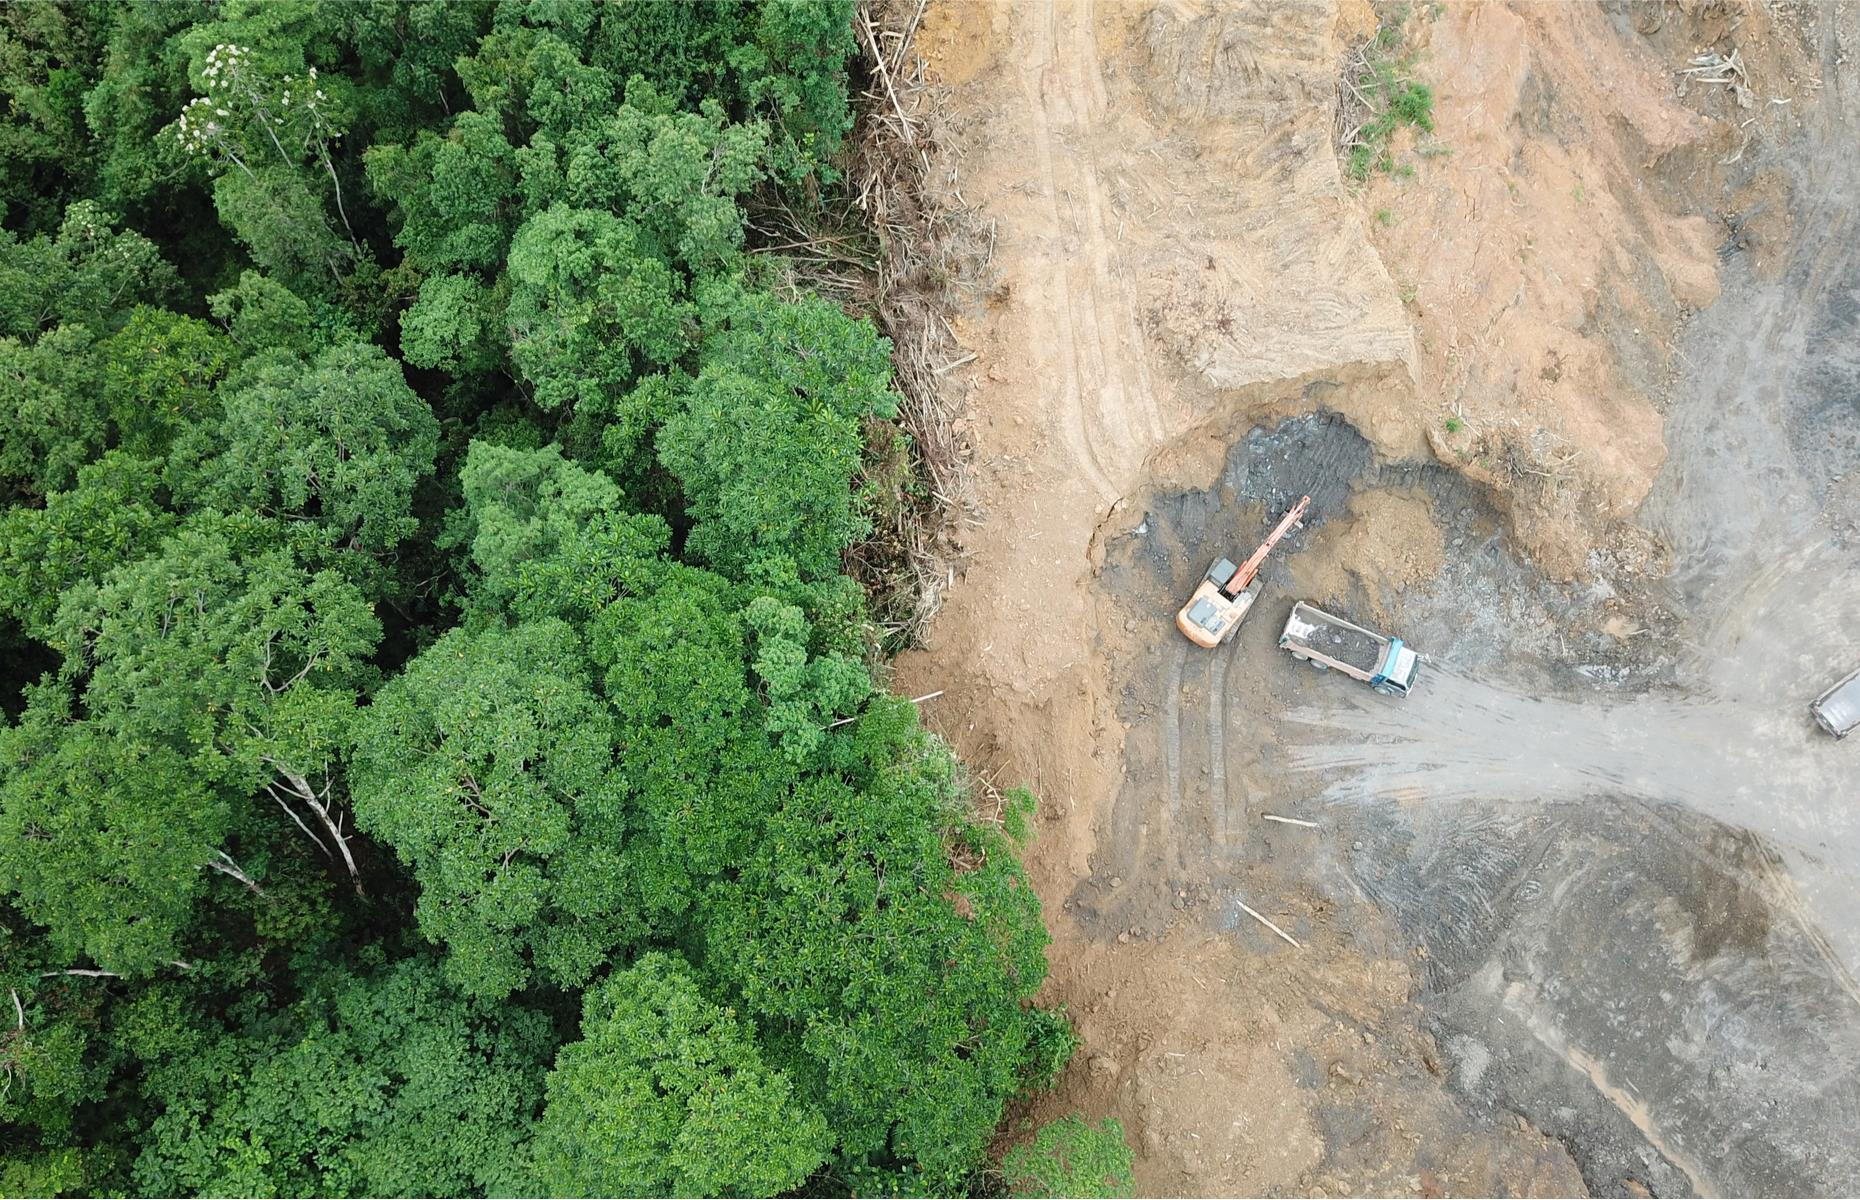 Slide 24 of 26: But, like many tropical rainforests around the world, Borneo is experiencing significant deforestation, particularly for the extraction of resources such as timber, palm oil, pulp, rubber and minerals, with one of the biggest drivers being the global demand for palm oil. While protection laws are in effect throughout Borneo, they are often disregarded.  See these secret wonders hidden in the world's largest deserts